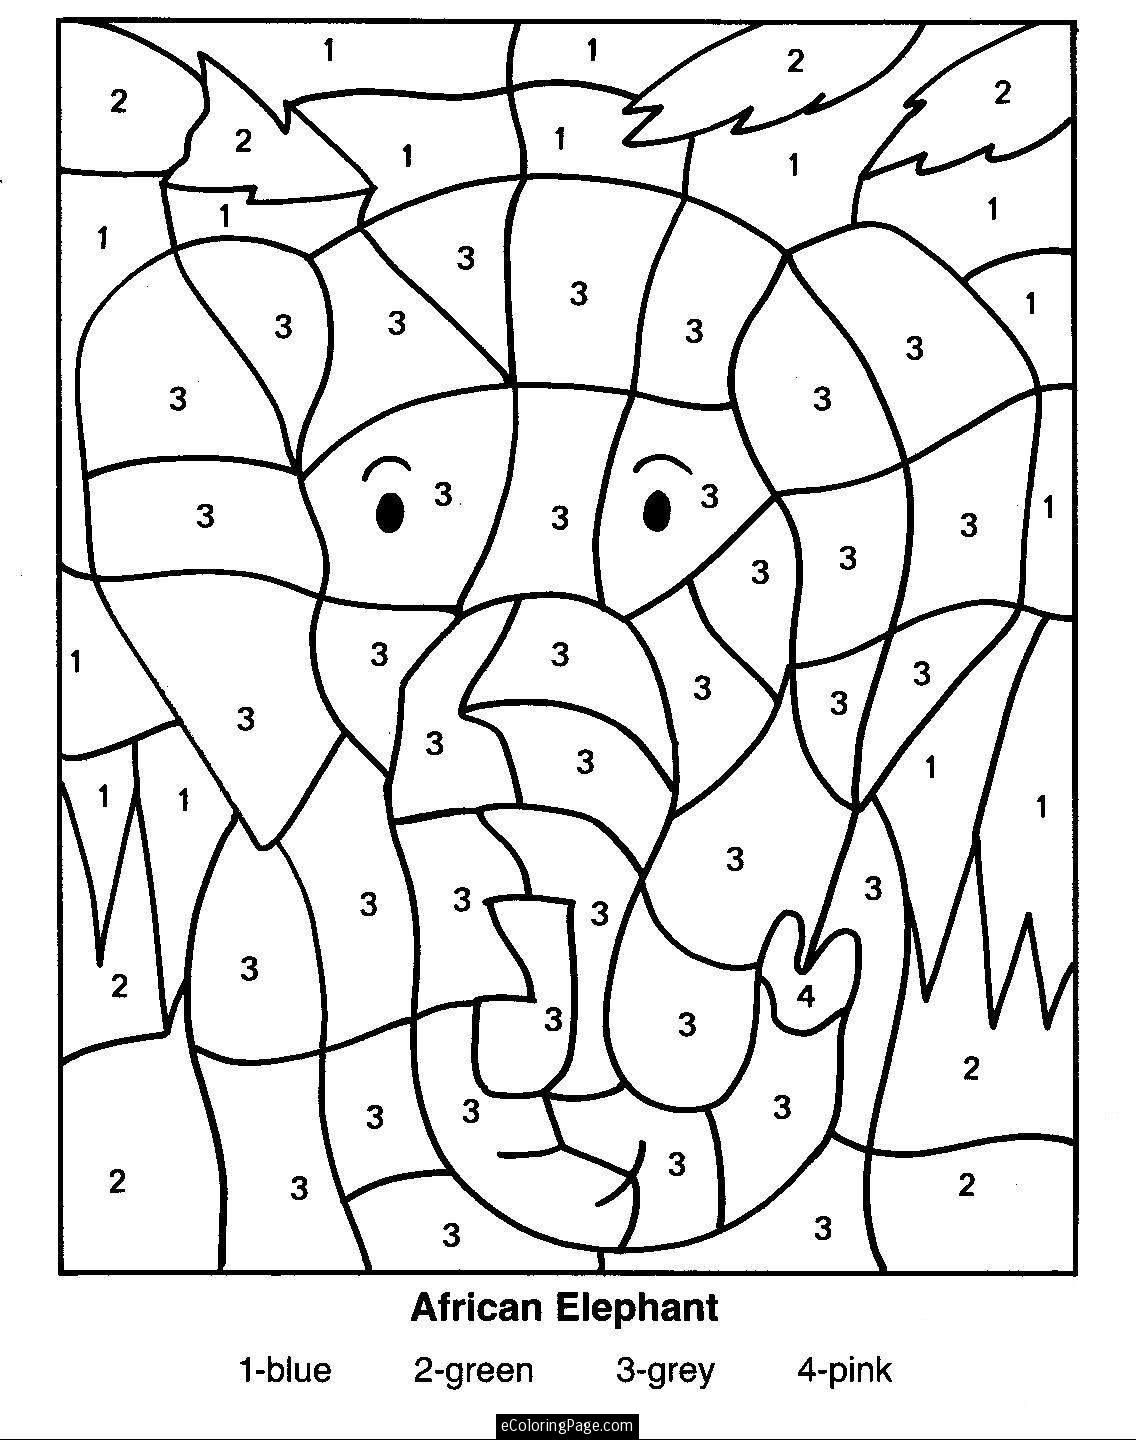 color by numbers elephant coloring pages for kids - Things To Color For Kids